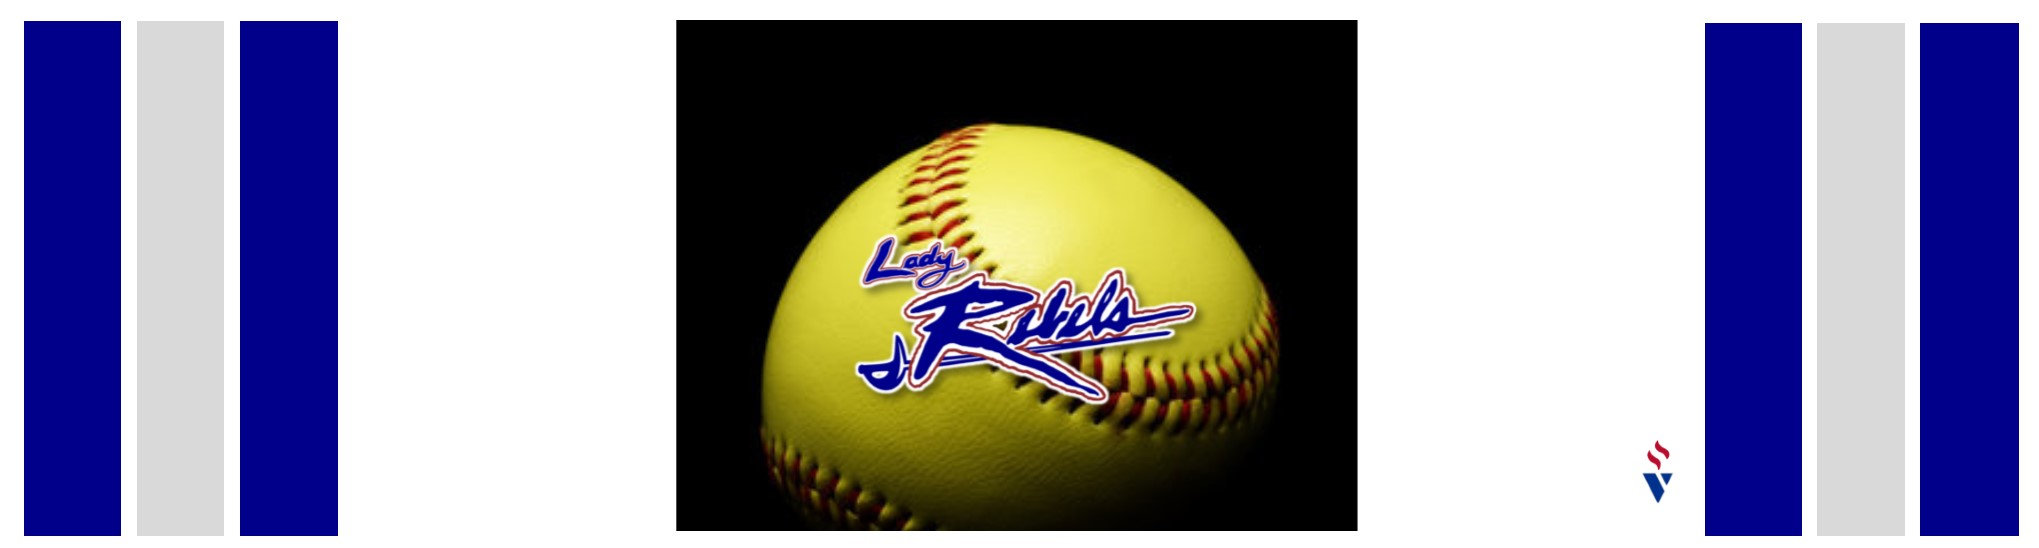 Watch the Lady Rebels State Championship Press Conference!